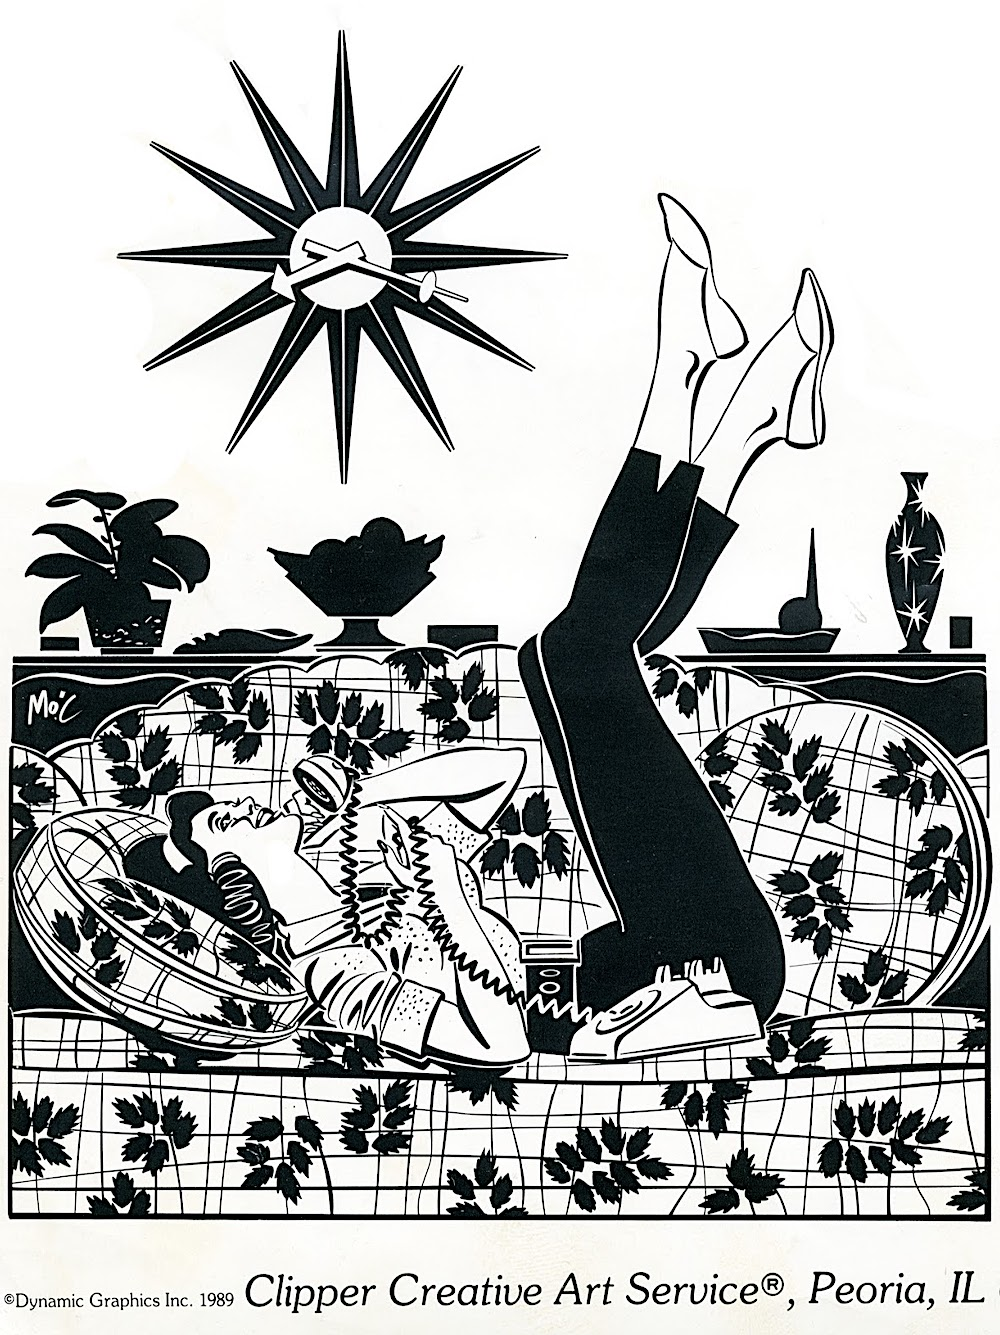 1989 clipper art for printing by cartoon artist Mitch O'Connell, a woman on the telephone, dynamic graphics Inc